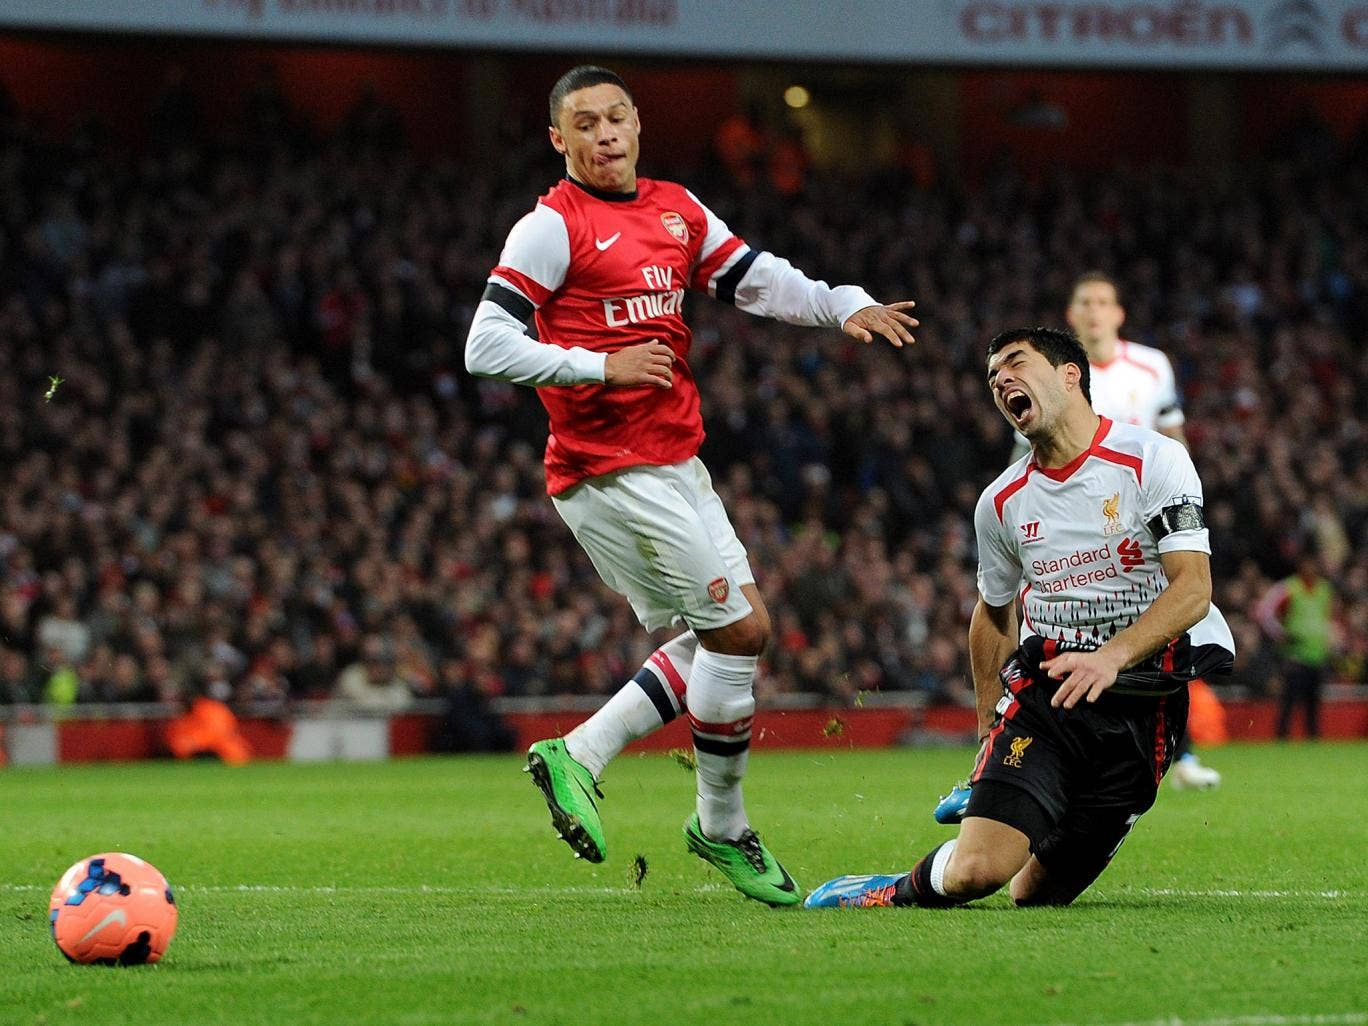 Luis Suarez of Liverpool is fouled in the box by Alex Oxlade-Chamberlain of Arsenal